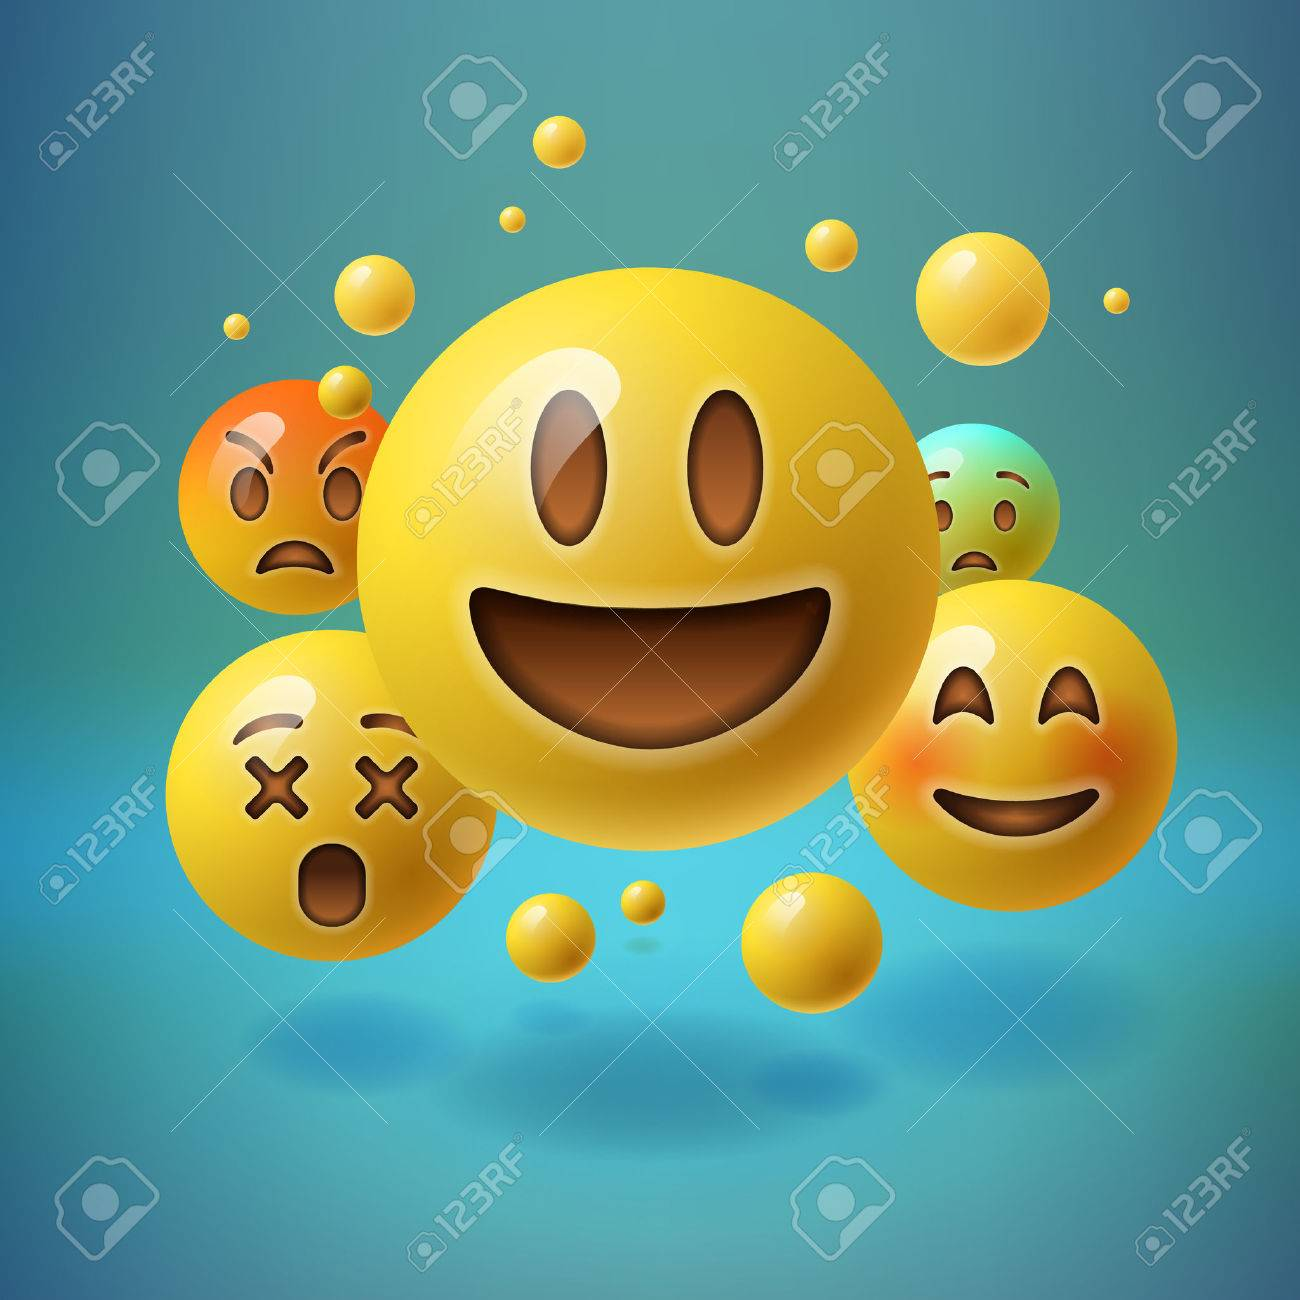 Smiley Emoticons, Emoji, Social-Media-Konzept, Vektor-Illustration. Standard-Bild - 55728717